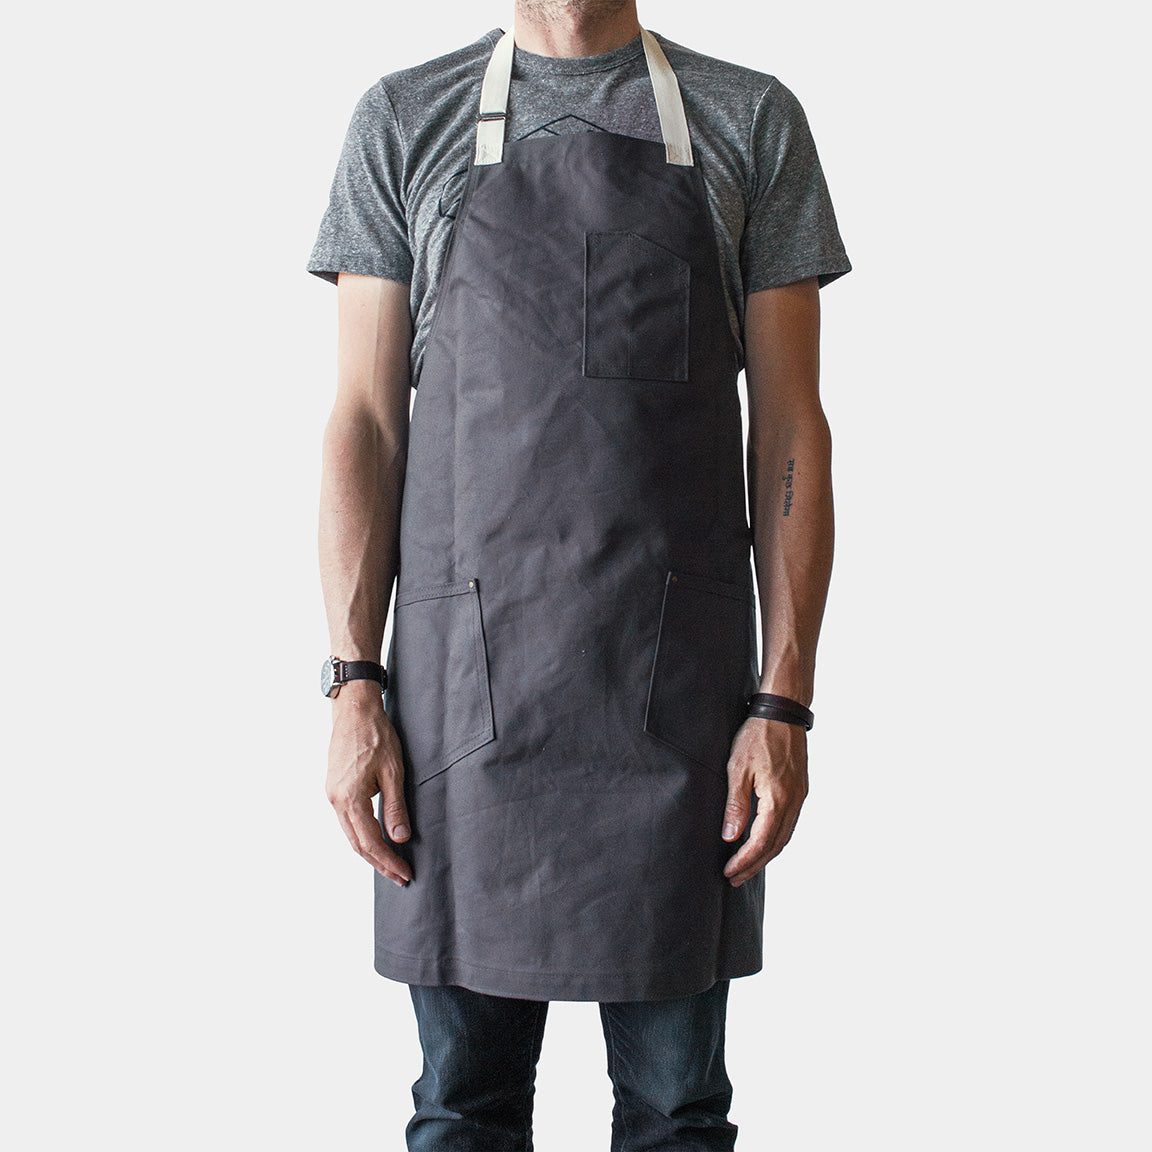 Winter Session Canvas Shop Apron - Grey